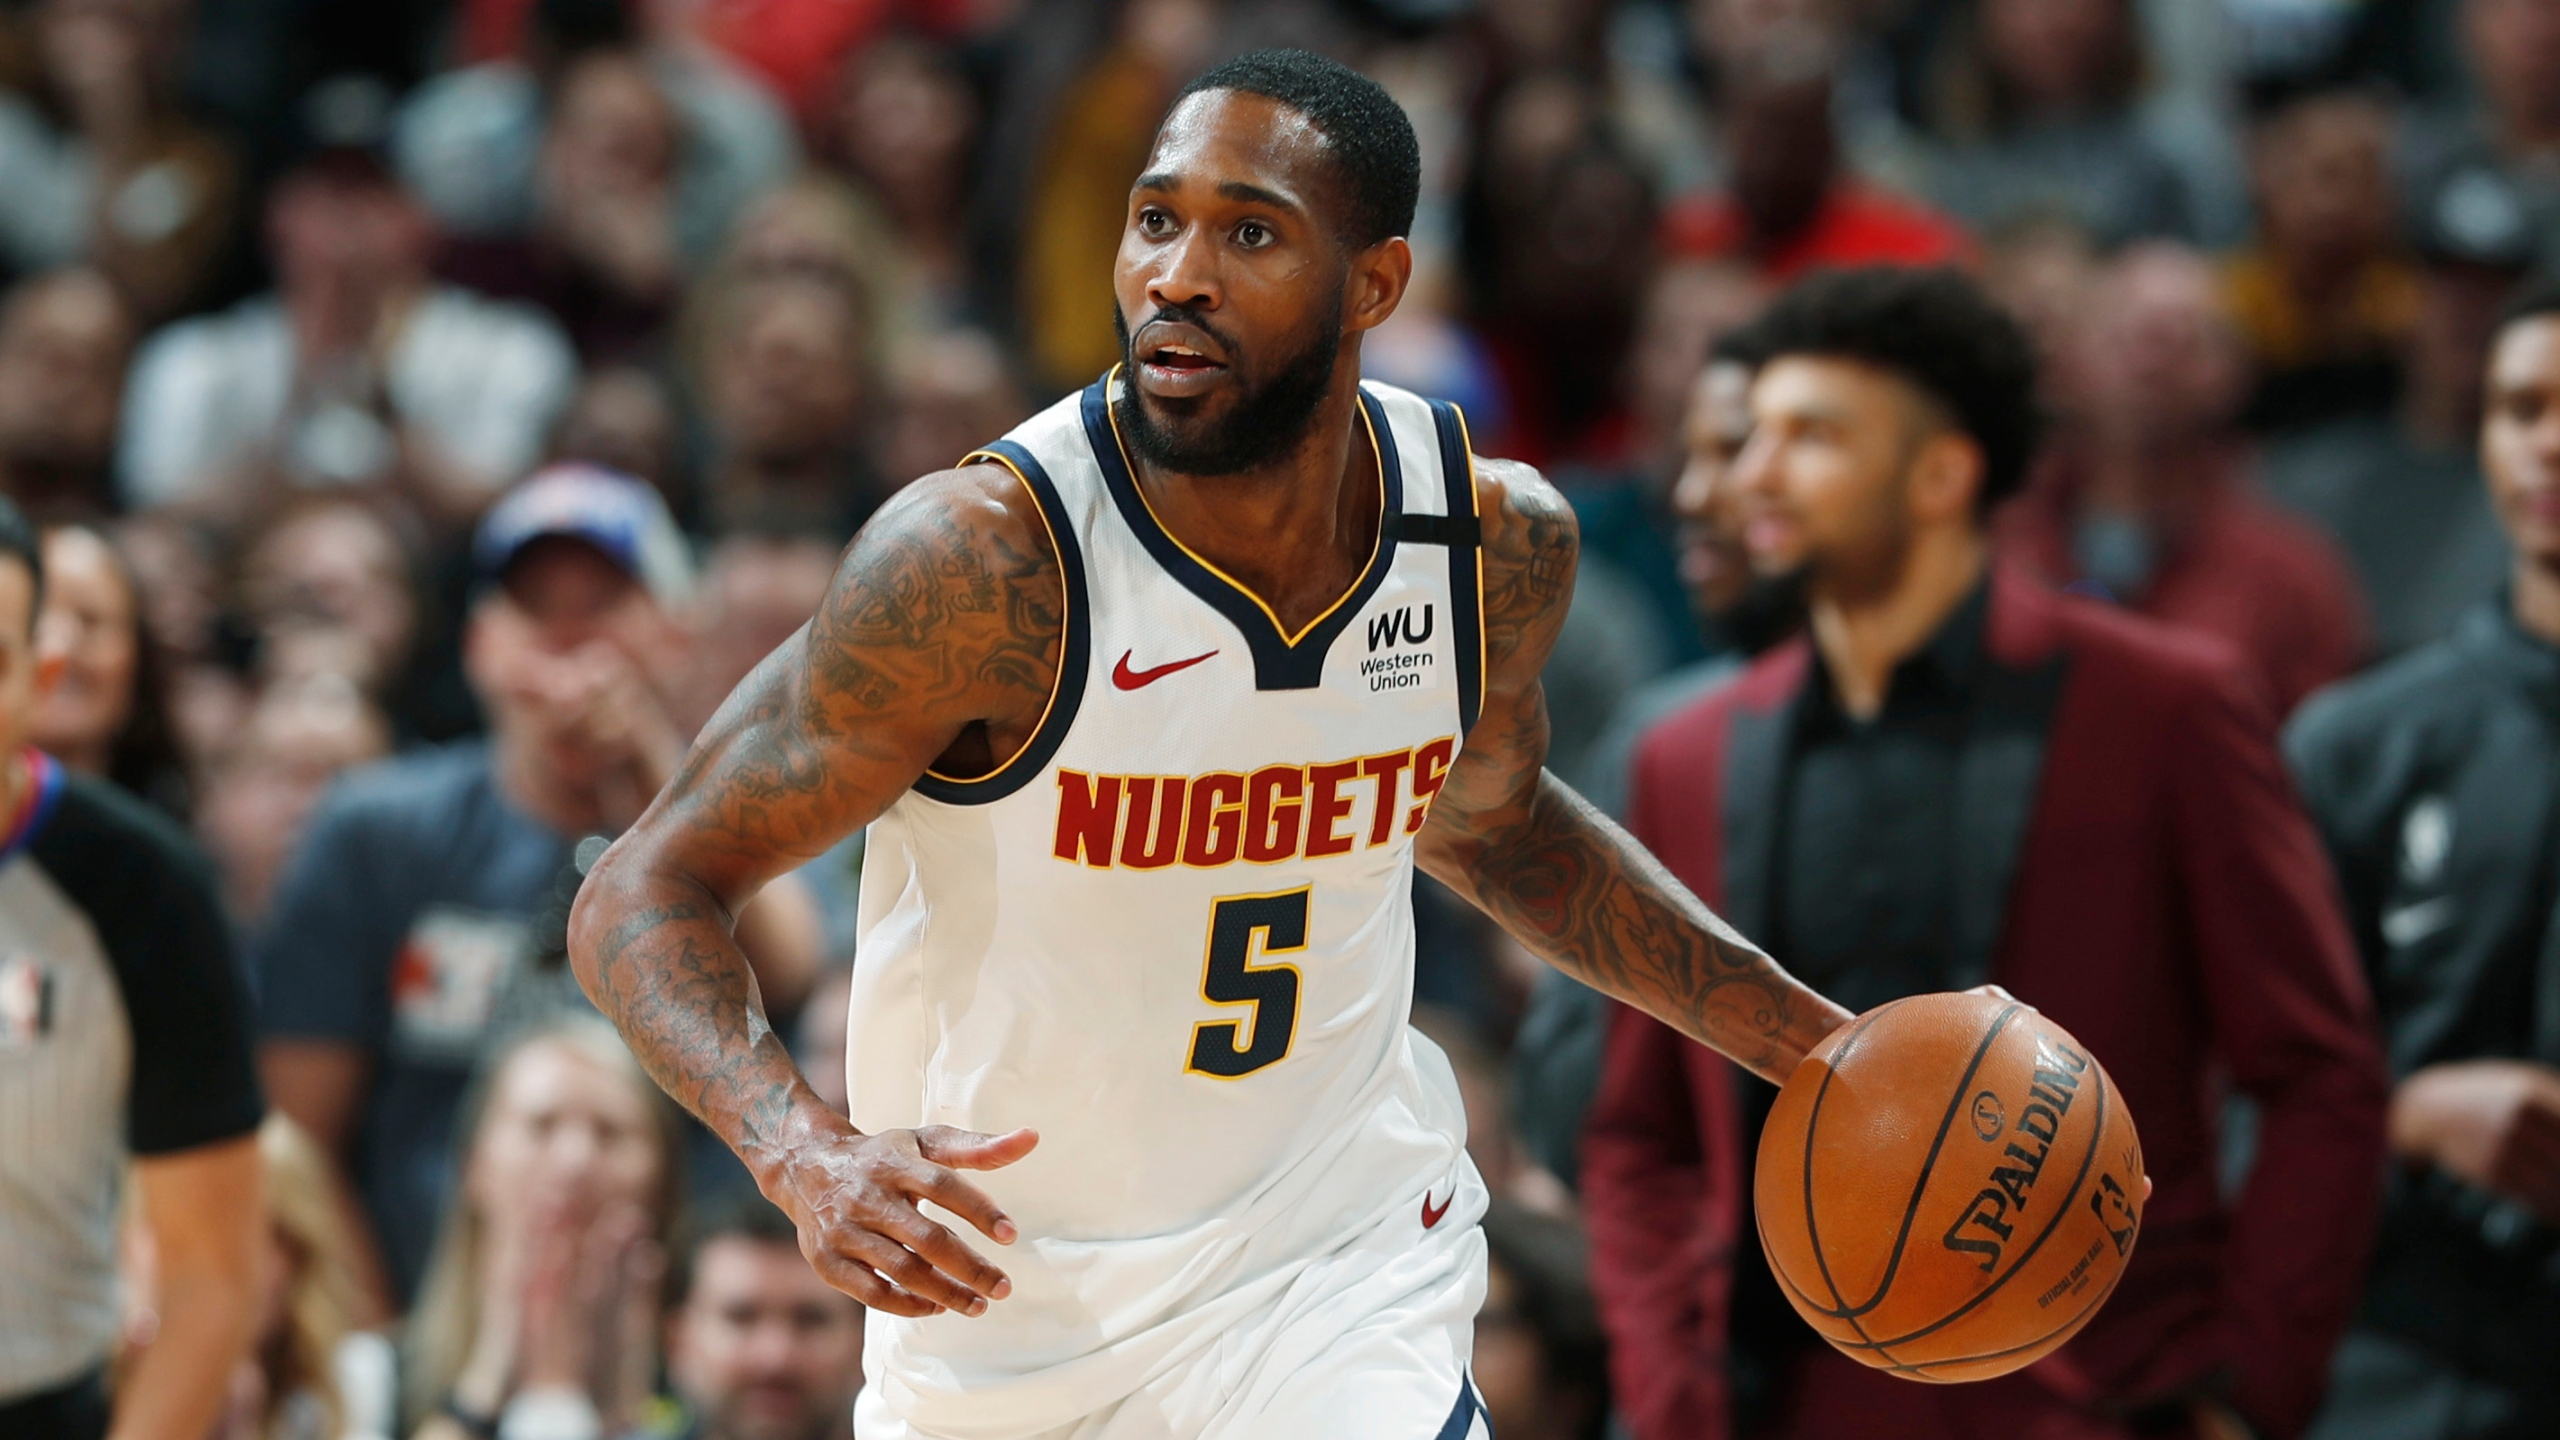 FILE - In this Jan. 26, 2020, file photo, Denver Nuggets' Will Barton (5) is shown in the second half of an NBA basketball game against the Houston Rockets, in Denver. (AP Photo/David Zalubowski, File)